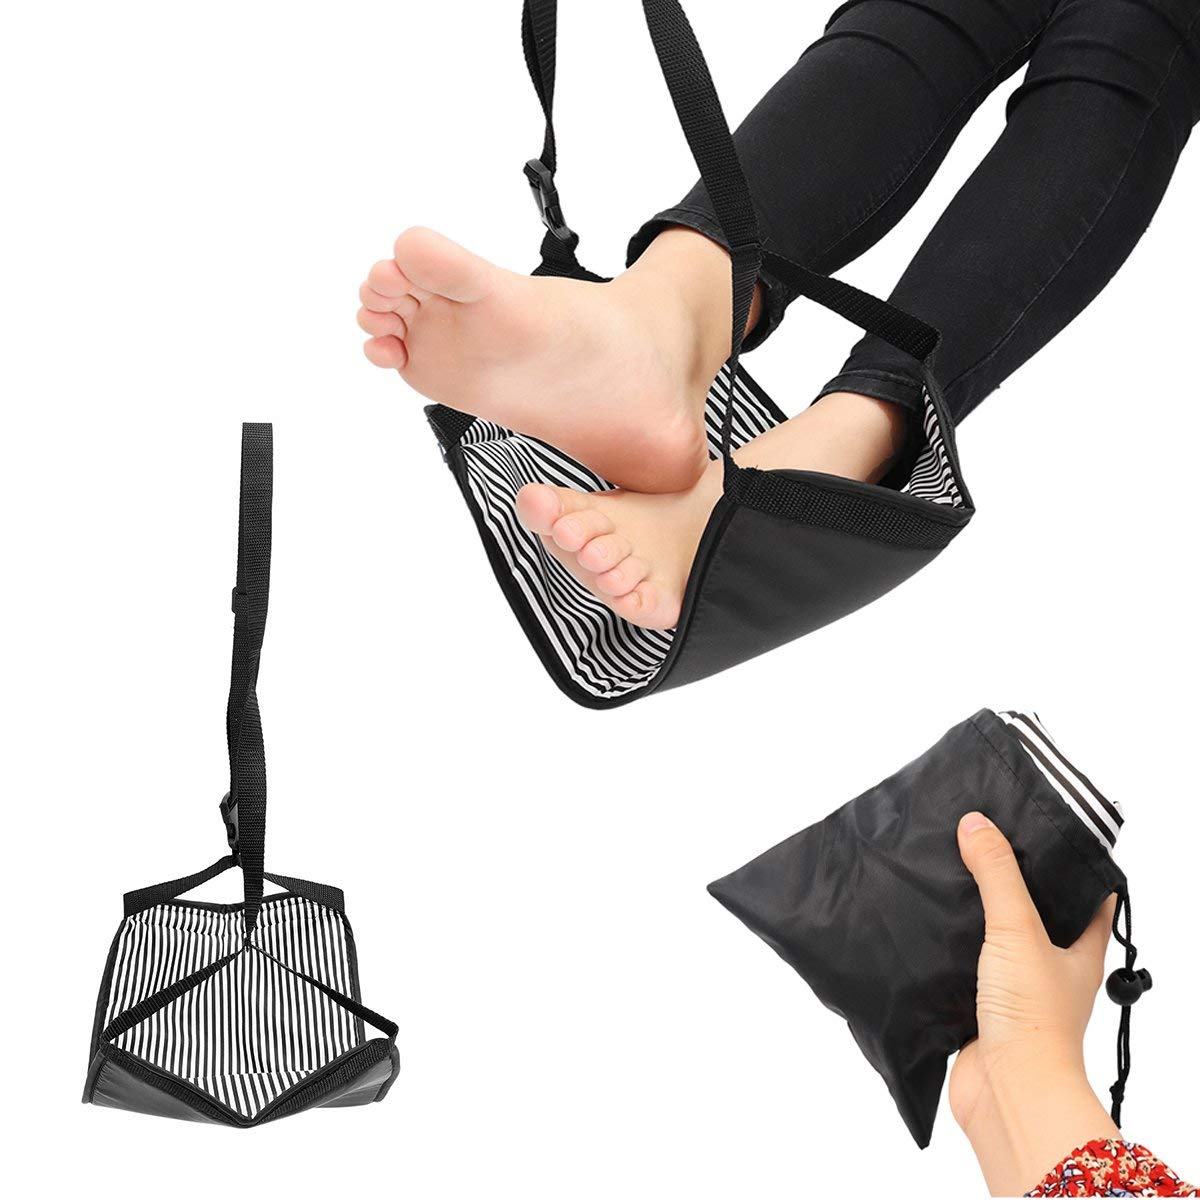 Eternal Sleep Foot Hammock Rest Travel Supplies - Portable Travel Cotton Knitted Footrest Flight Carry-On Foot Hammock Rest - Residue Understructure Knoll Remain Invertebrate Ease - 1PCs